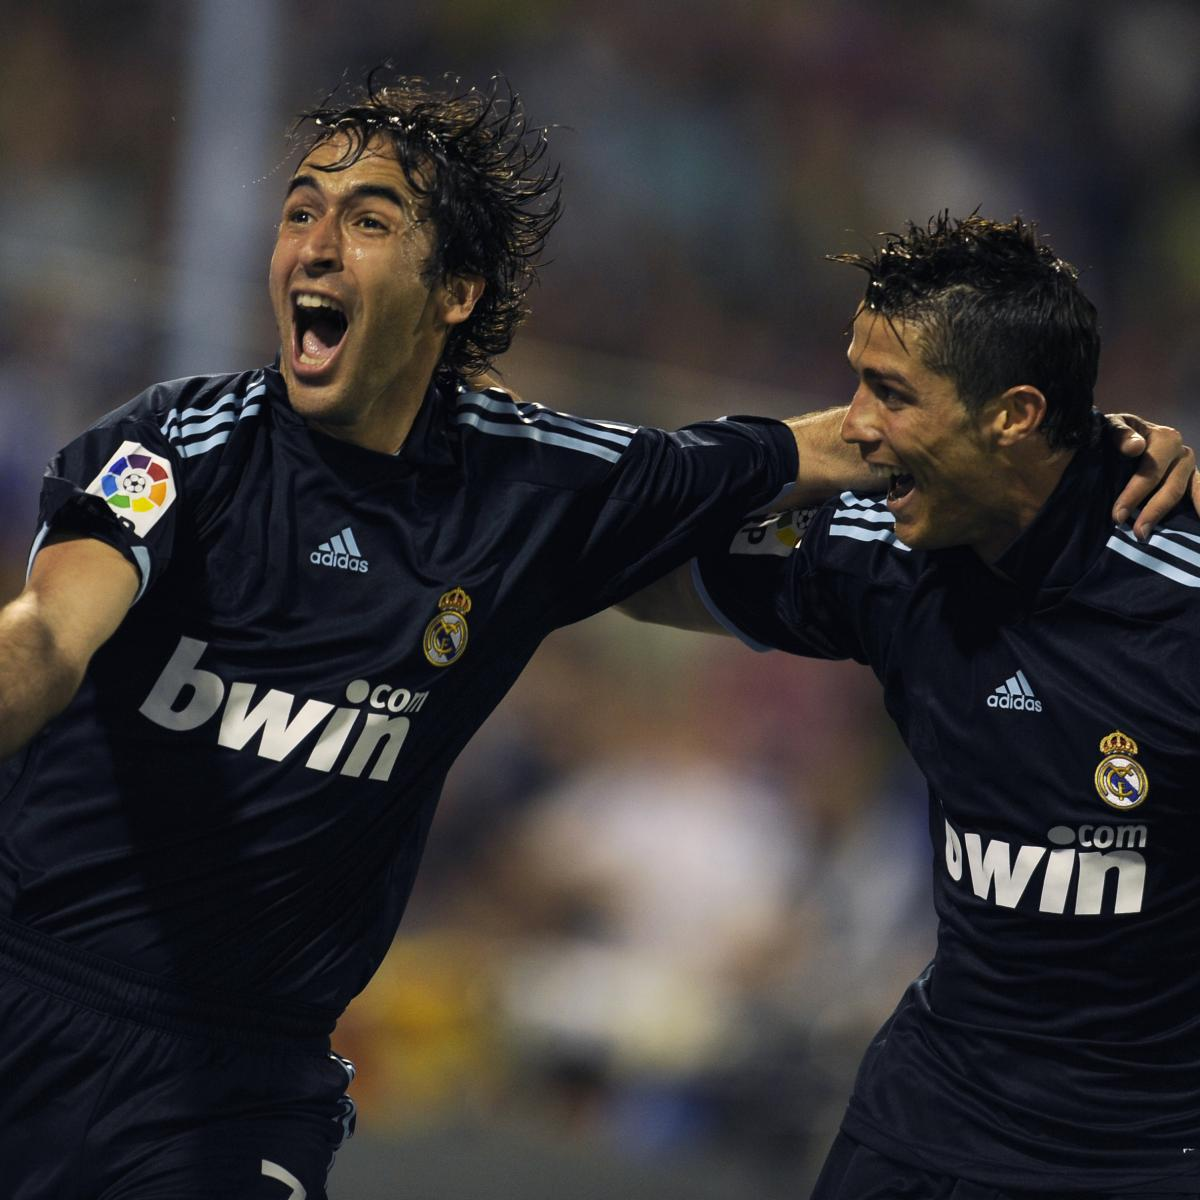 f0ad894b3 Real Madrid s Best Matchday Squad of Last 20 Years Based on Shirt Numbers